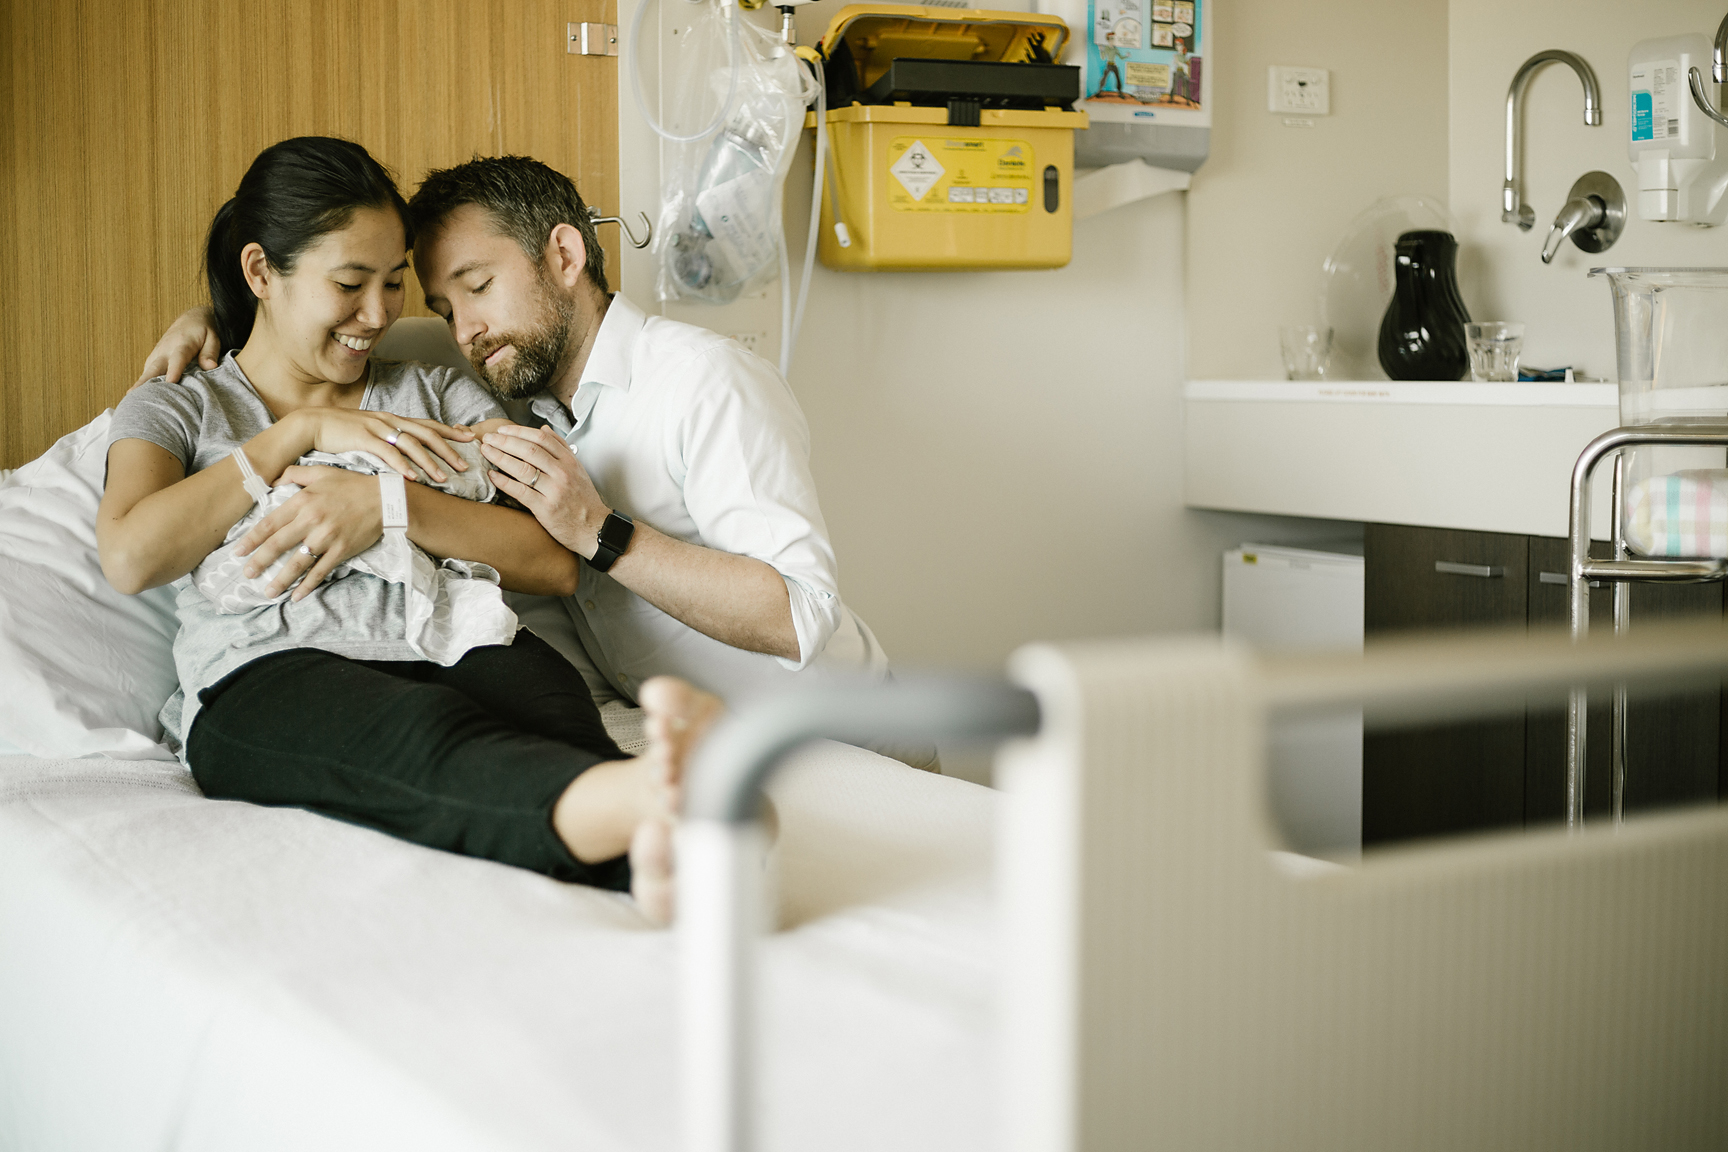 In hospital, too; not usually known for the best photography-friendly lighting. (Image by Poppy & Sage Photography.)